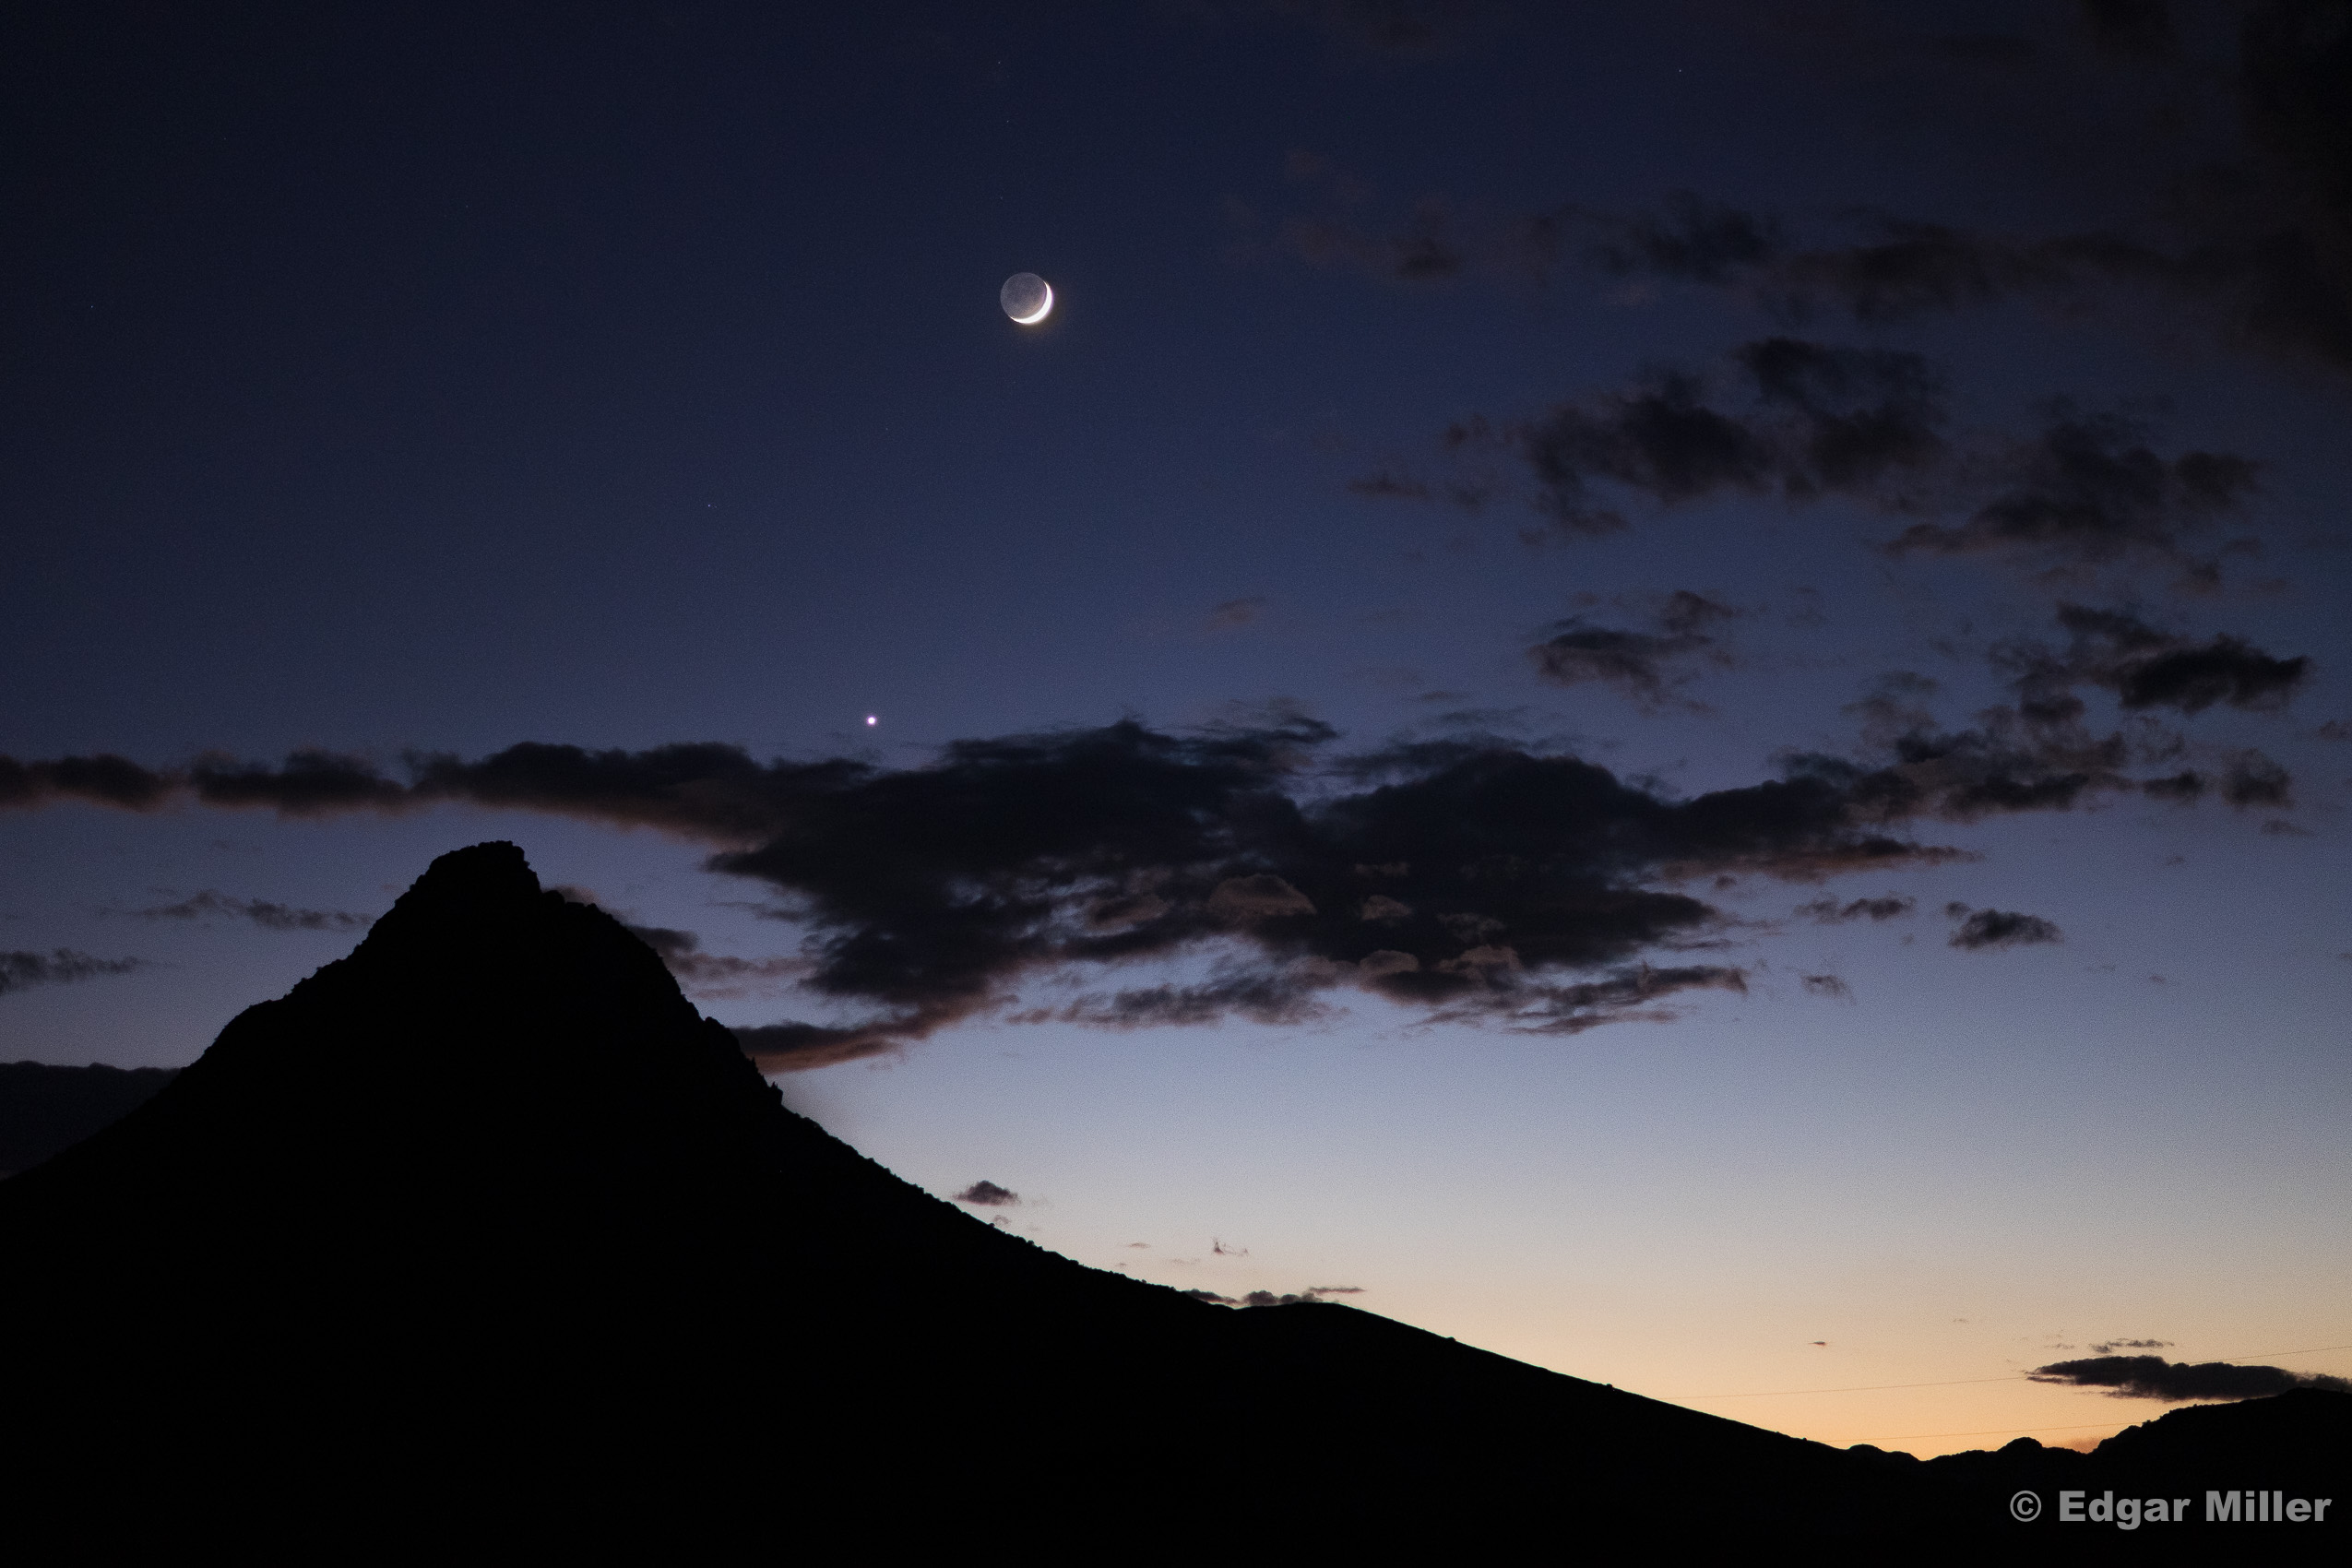 Moon, Venus & Mitre Peak, West Texas